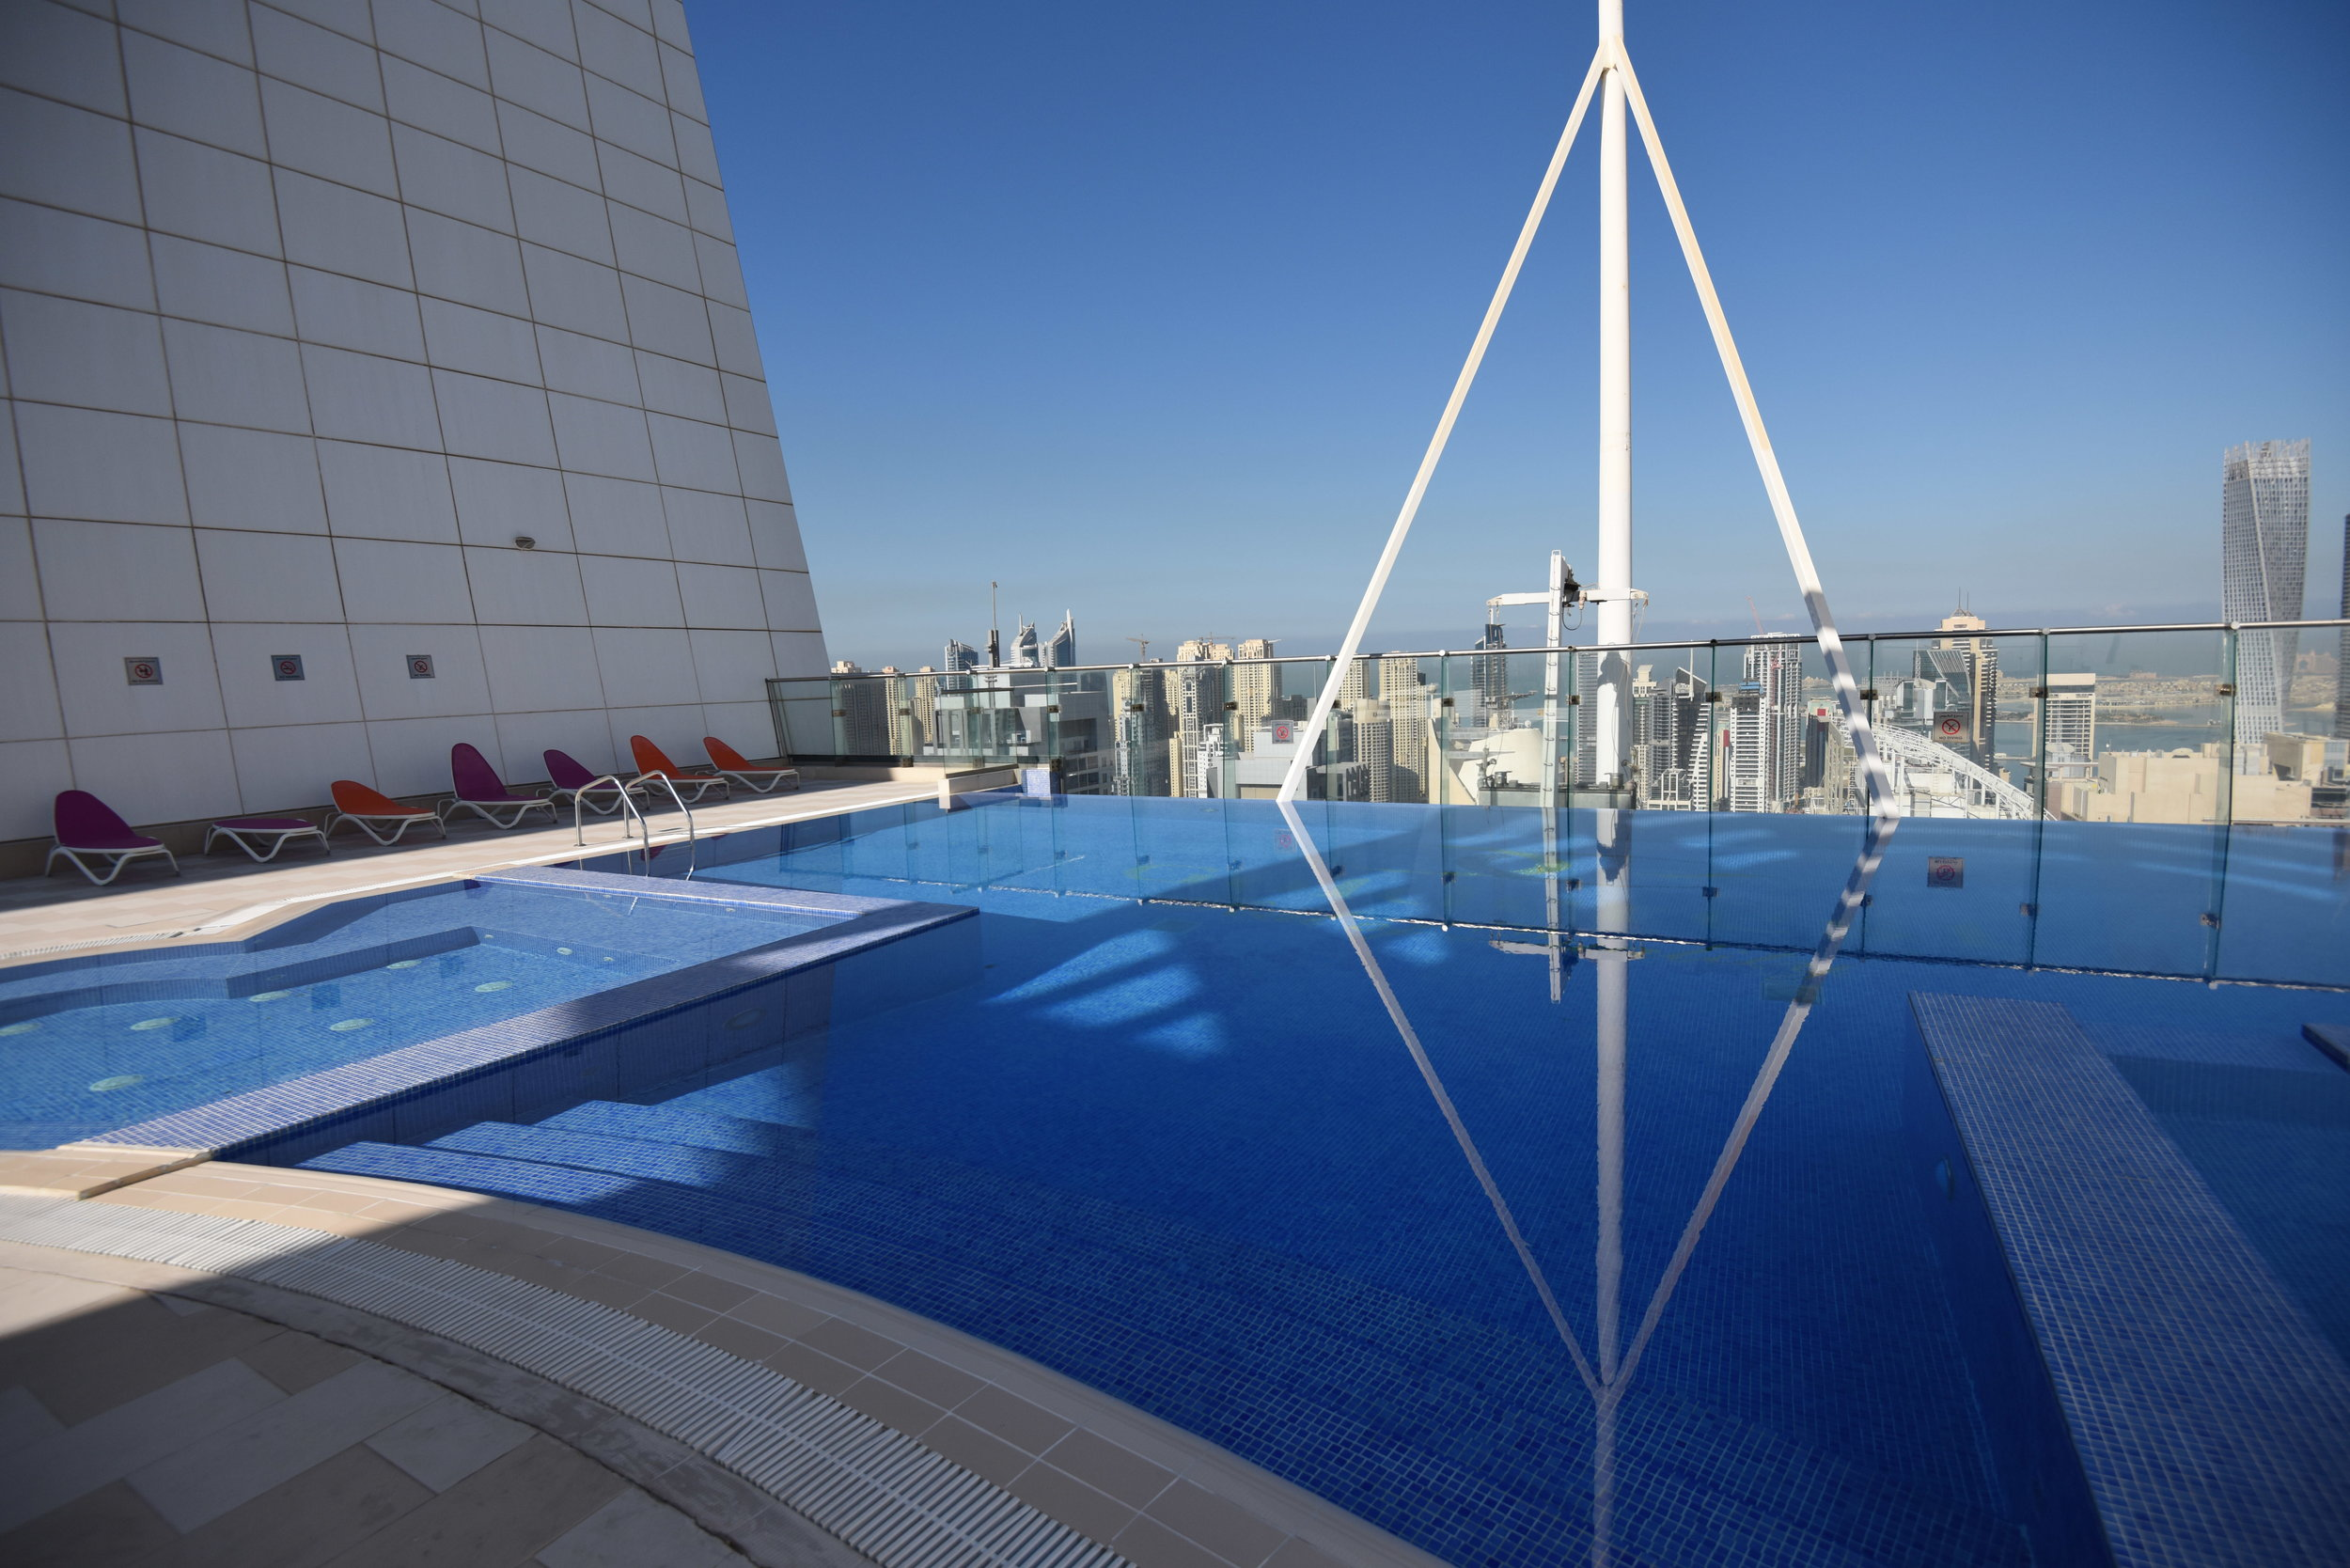 Stunning roof top swimming pool and view to get a great tan and watch the city from above